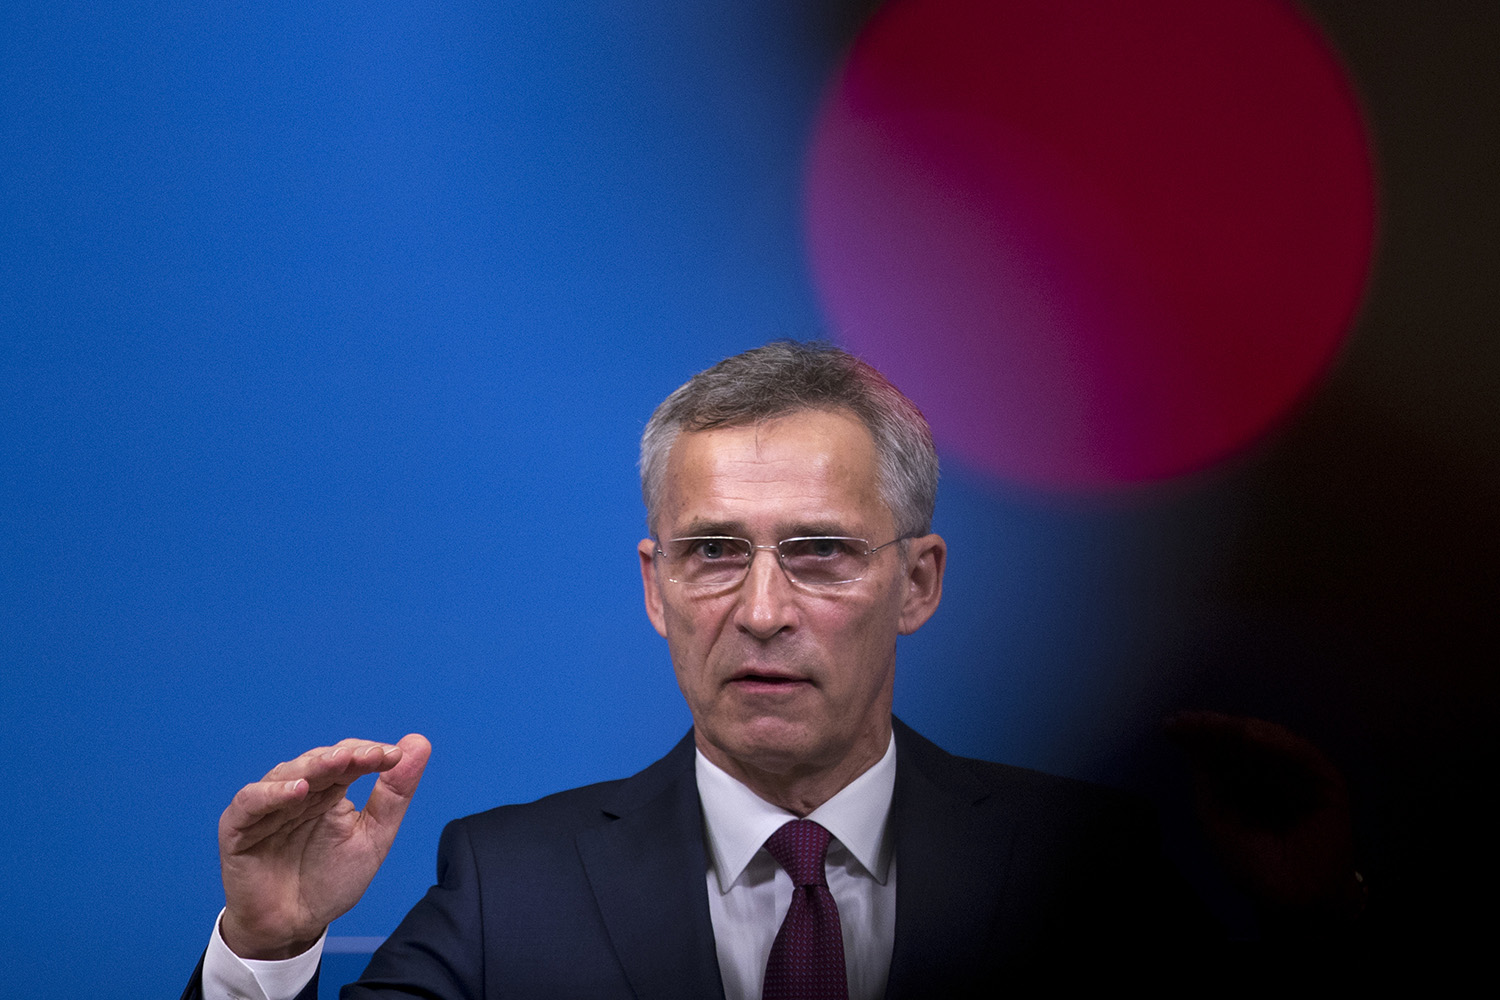 NATO Secretary General Jens Stoltenberg talks to journalists during a news conference at the NATO headquarters in Brussels, Wednesday, Oct. 24, 2018. Stoltenberg briefed reporters on alleged Russian breaches of the INF international missile agreement, and on the alliance's military exercises in Norway, its biggest since the Cold War. (Francisco Seco/AP)